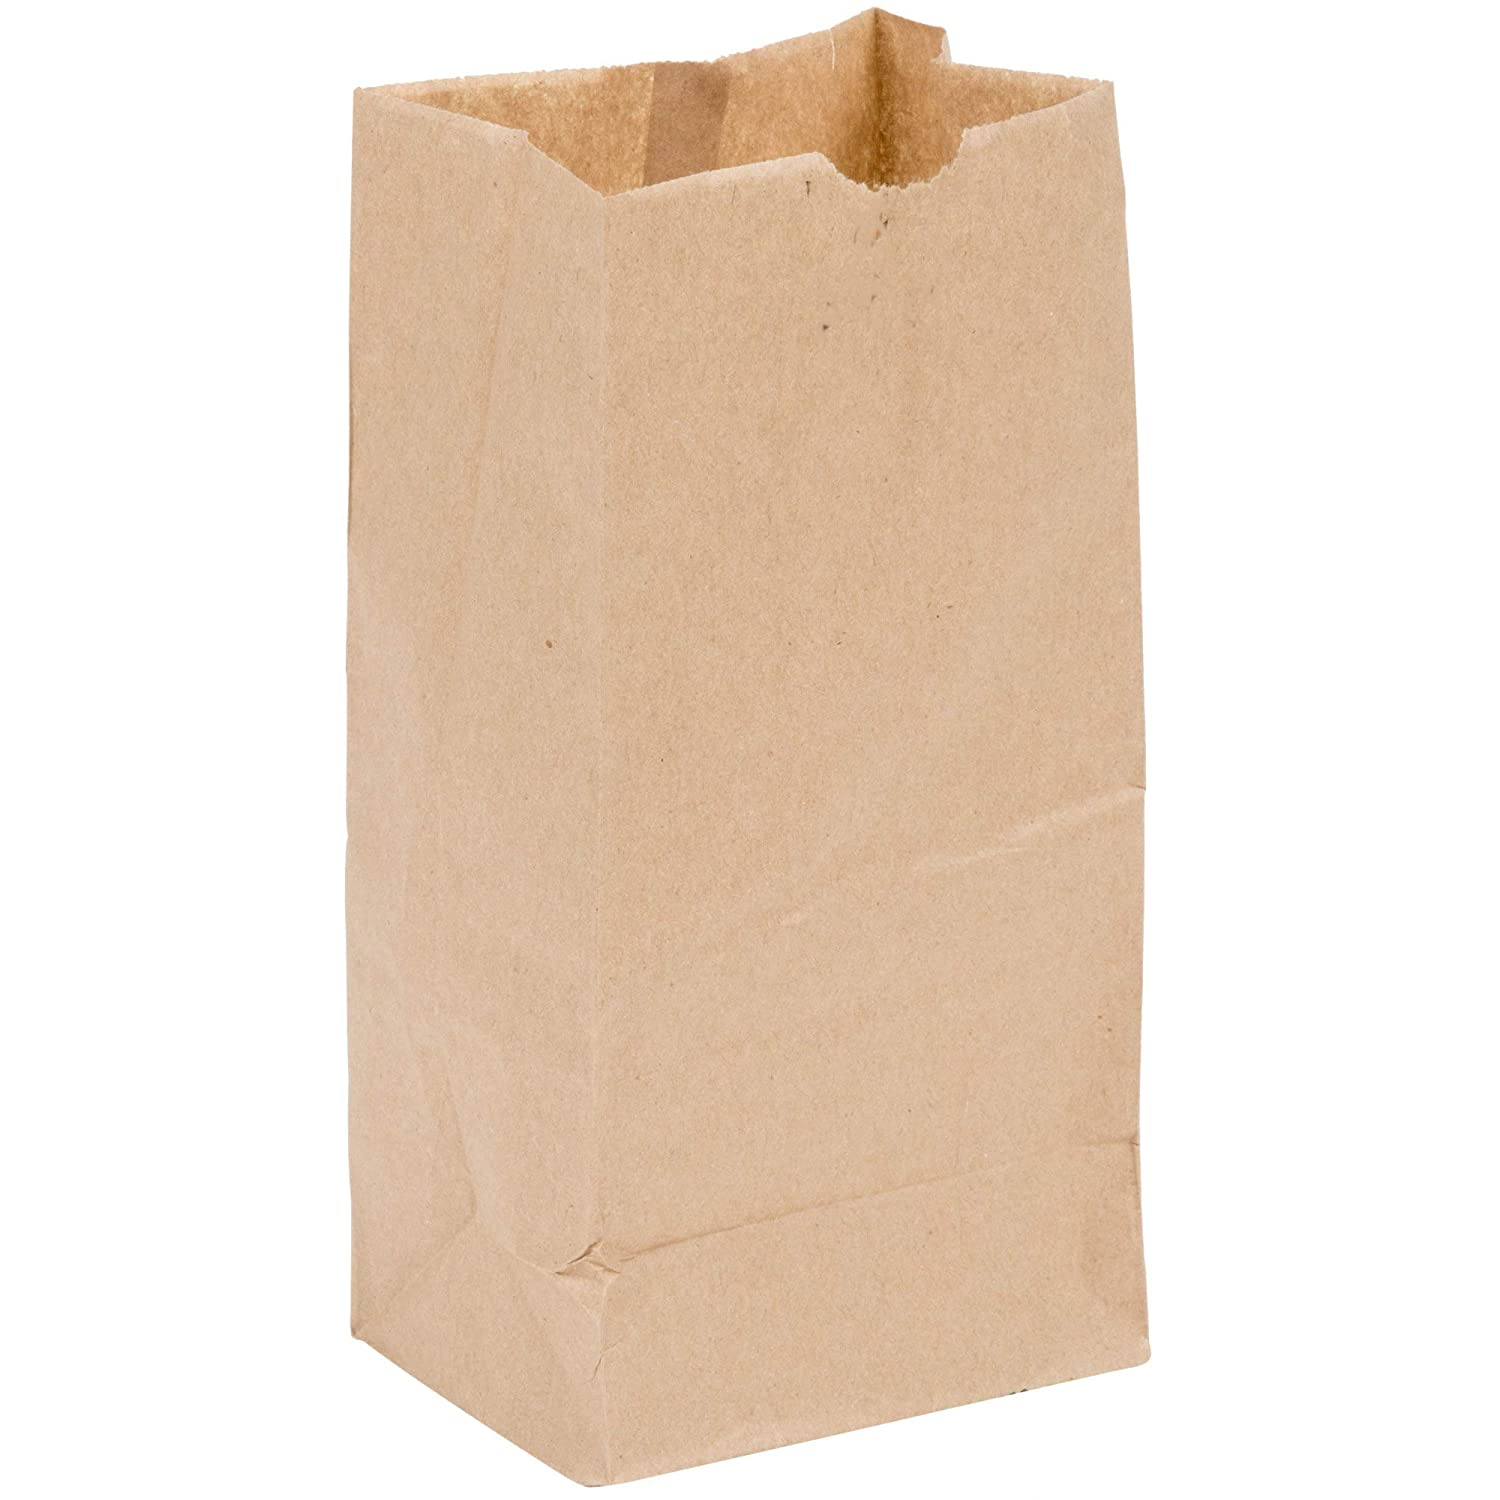 4lb Brown Paper Lunch Bags - Pack of 100ct